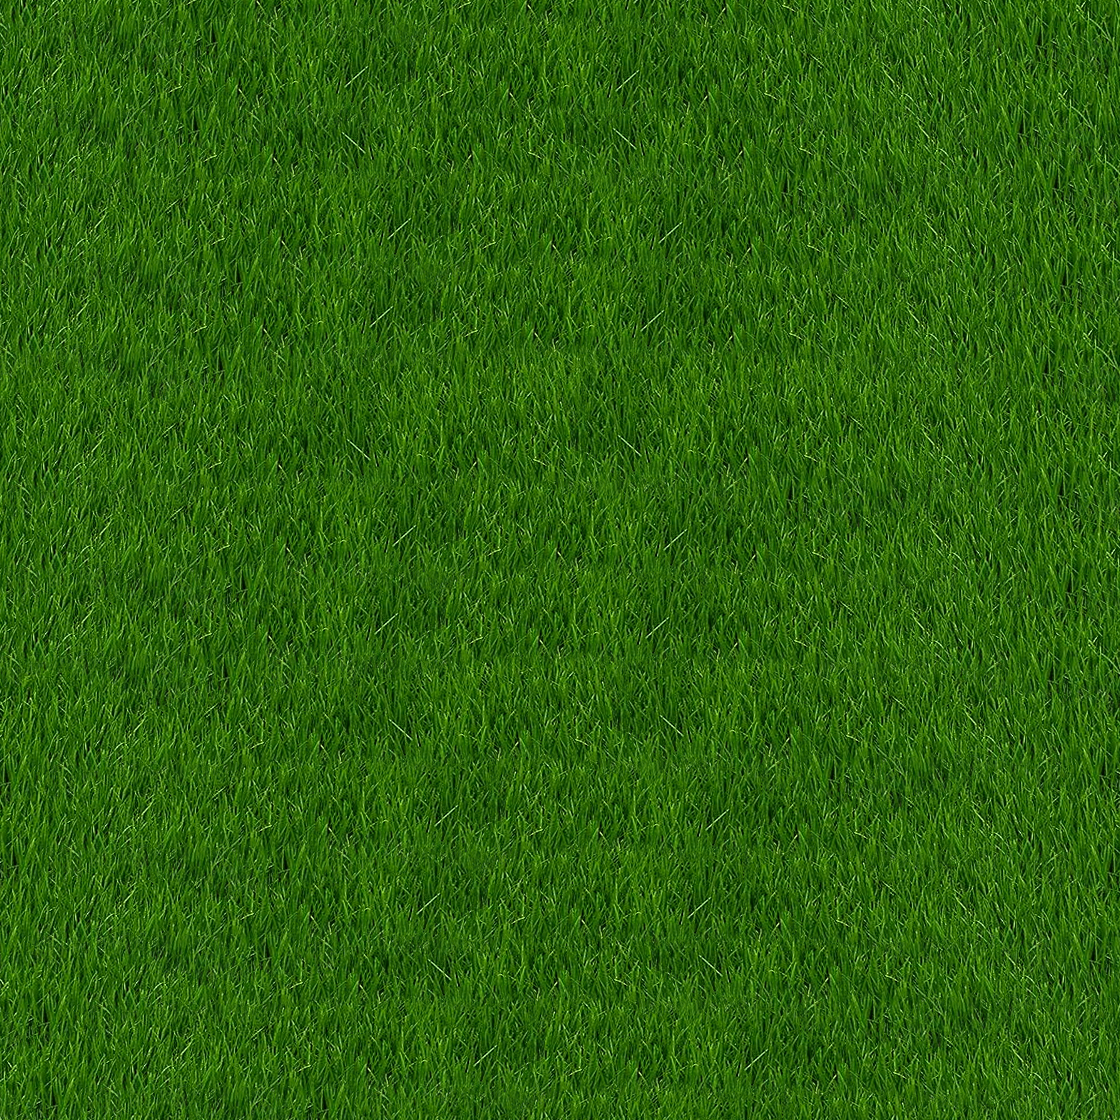 grass textures for photoshop. Black Bedroom Furniture Sets. Home Design Ideas